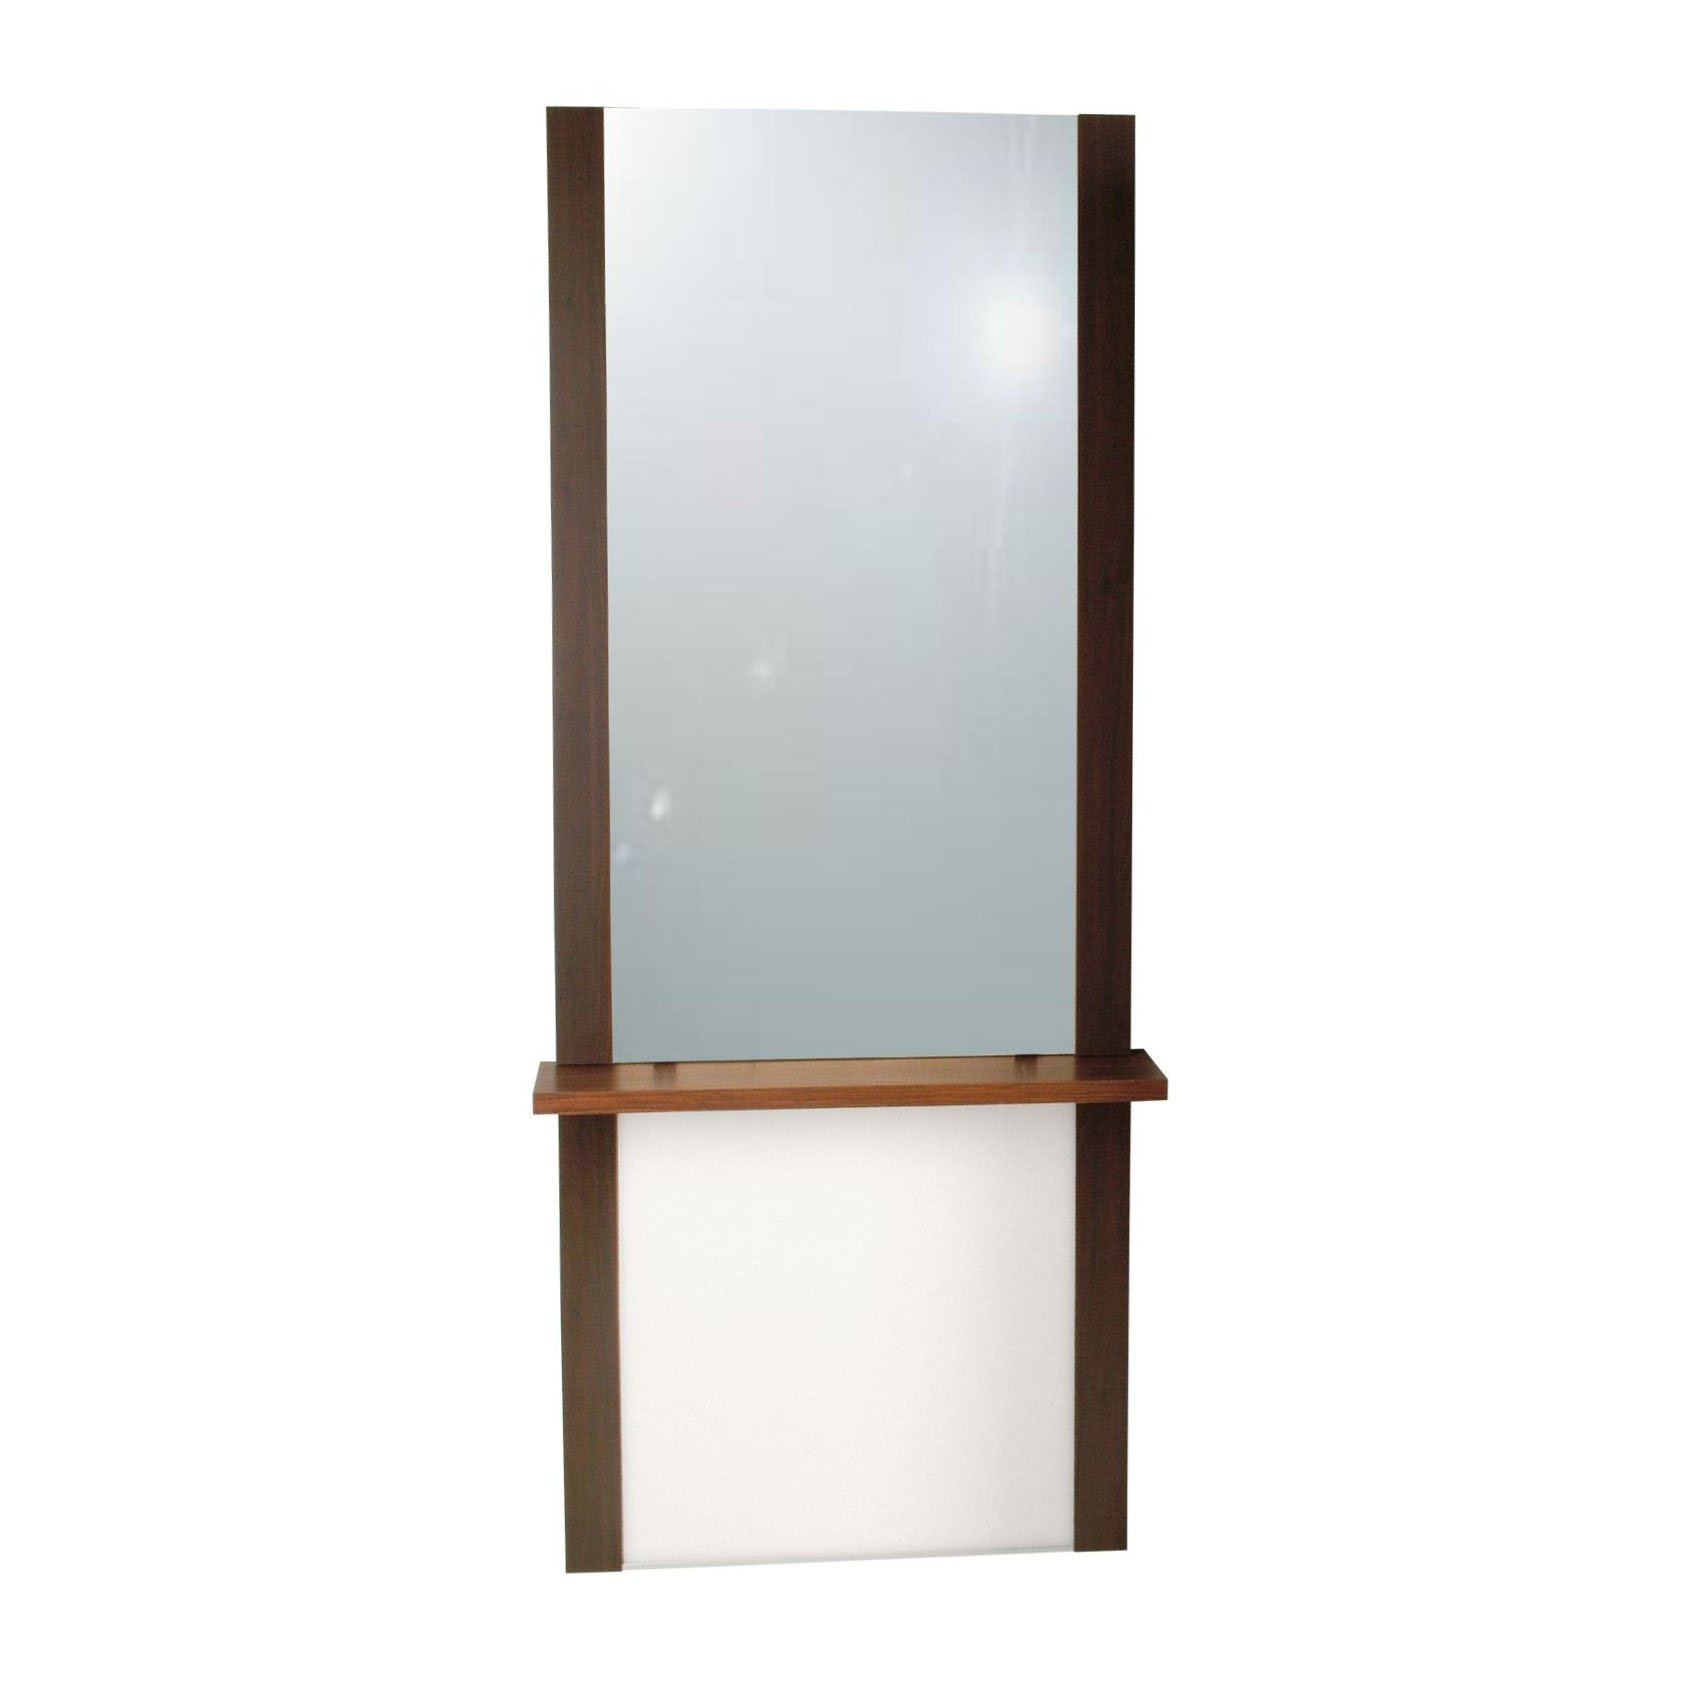 623 Alta Wall-Mounted Mirror and Ledge